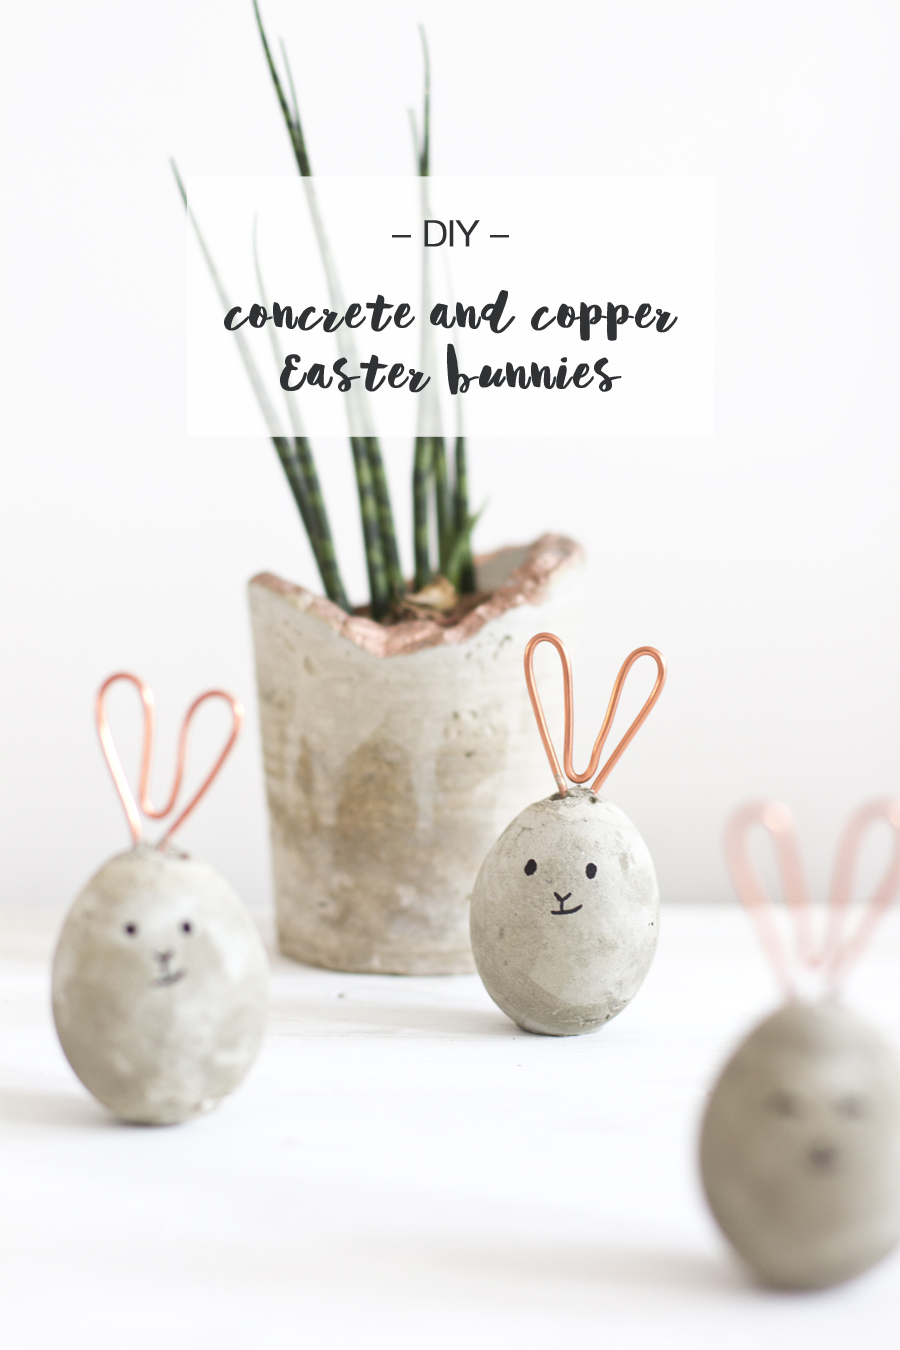 DIY-concrete-and-copper-Easter-bunnies.jpg